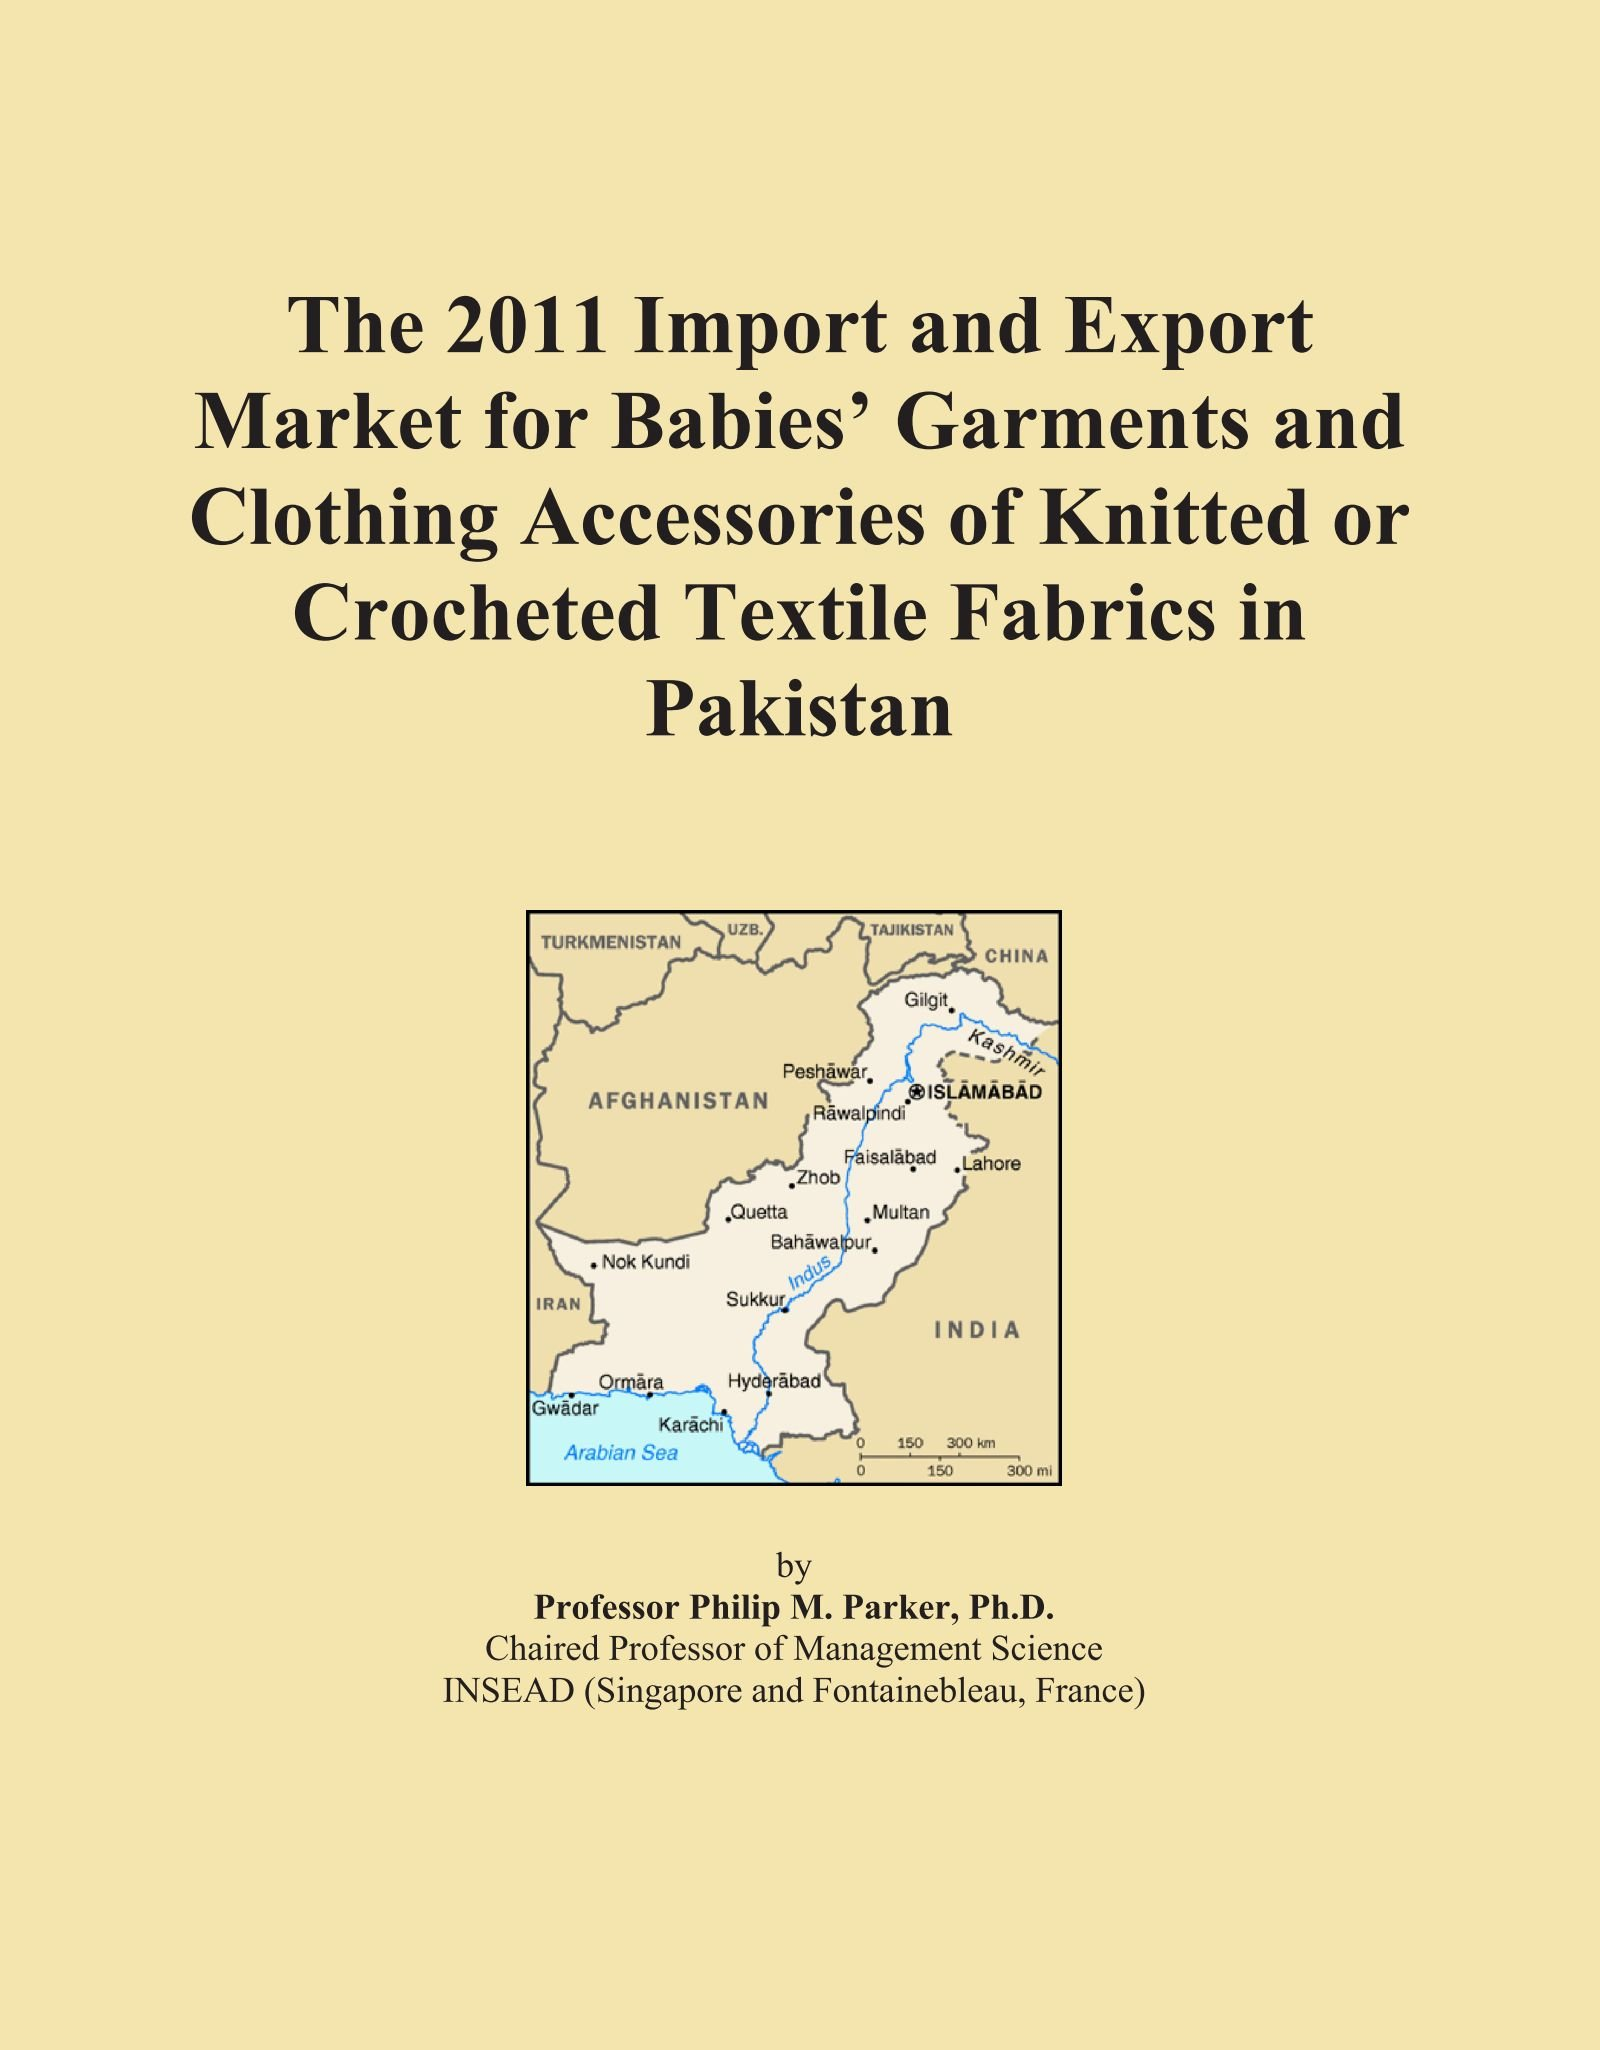 Download The 2011 Import and Export Market for Babies' Garments and Clothing Accessories of Knitted or Crocheted Textile Fabrics in Pakistan pdf